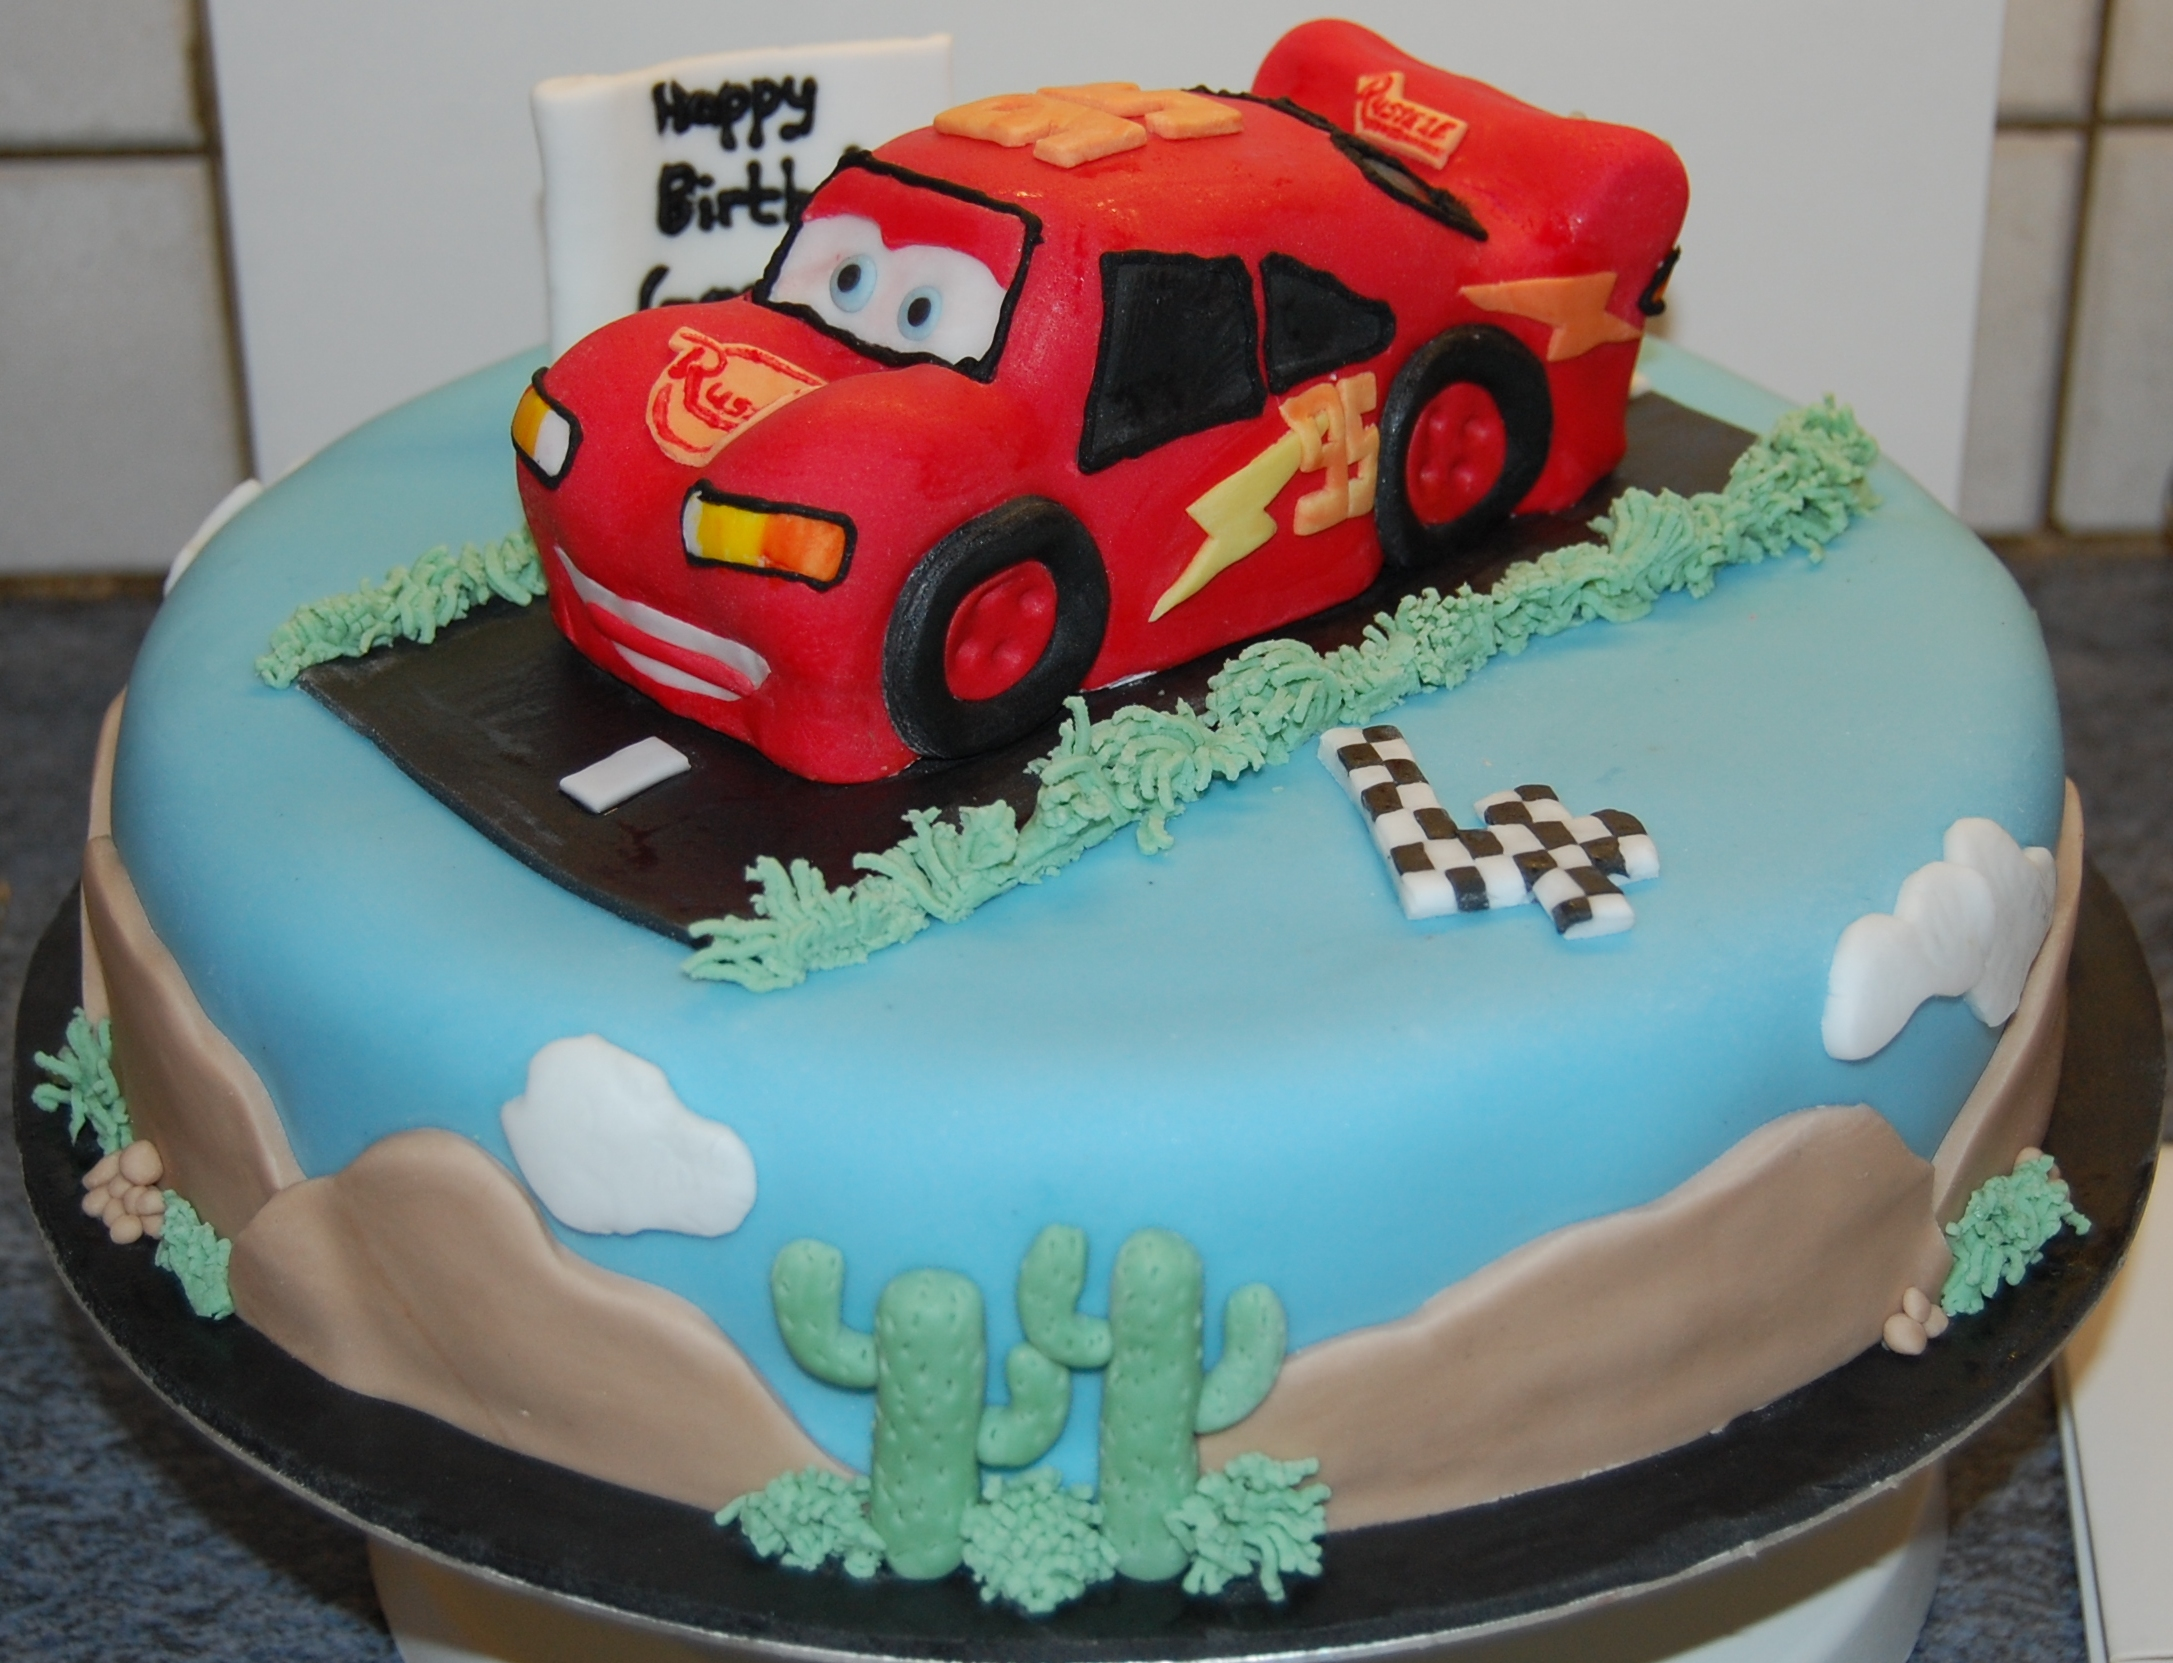 Hours of Fun Lightning McQueen Birthday cake for a special 4th